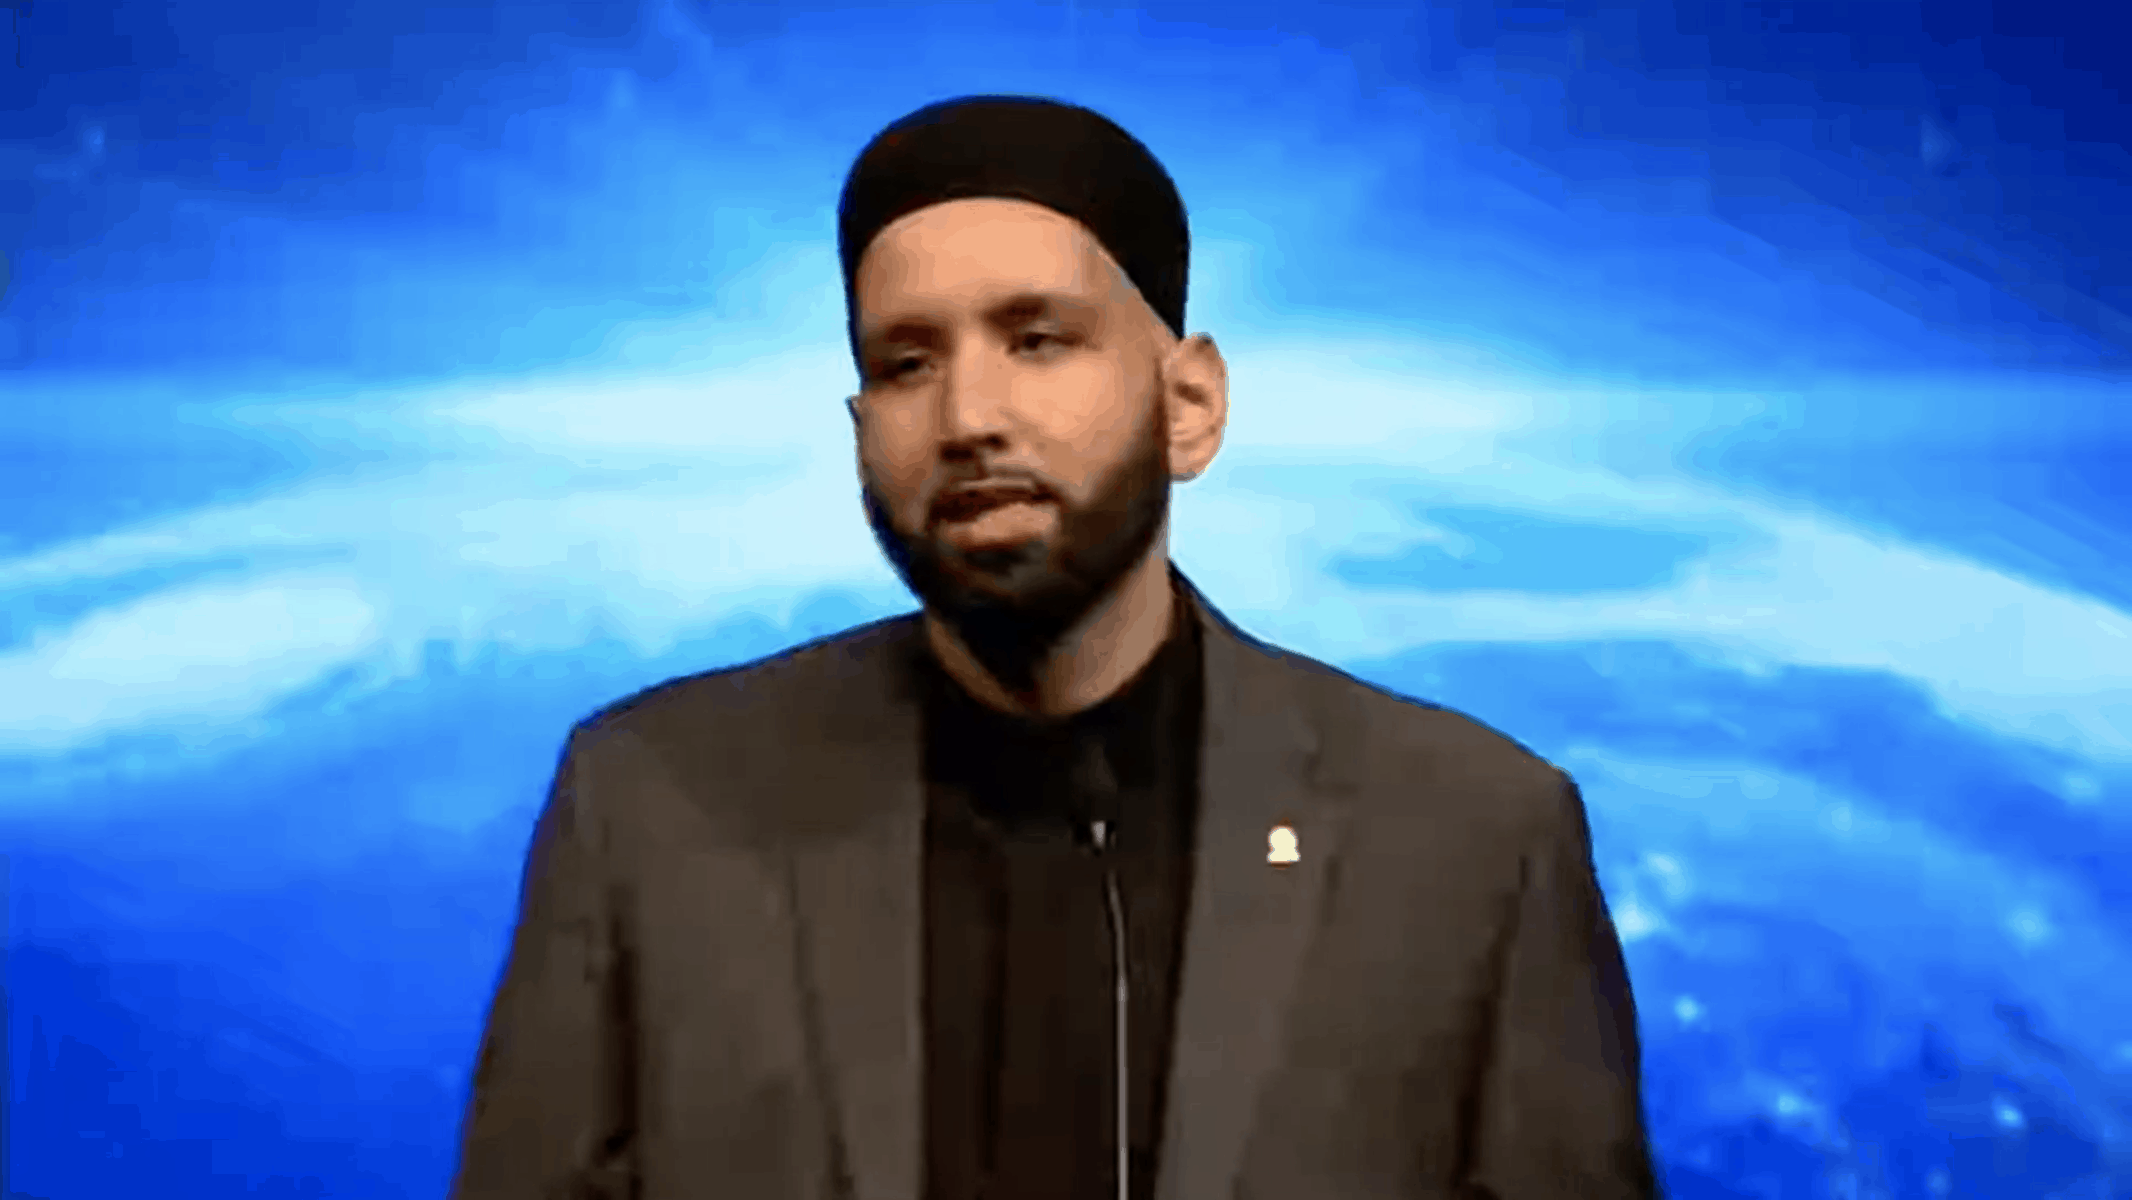 Omar Suleiman – Our Role as Muslims in The United States